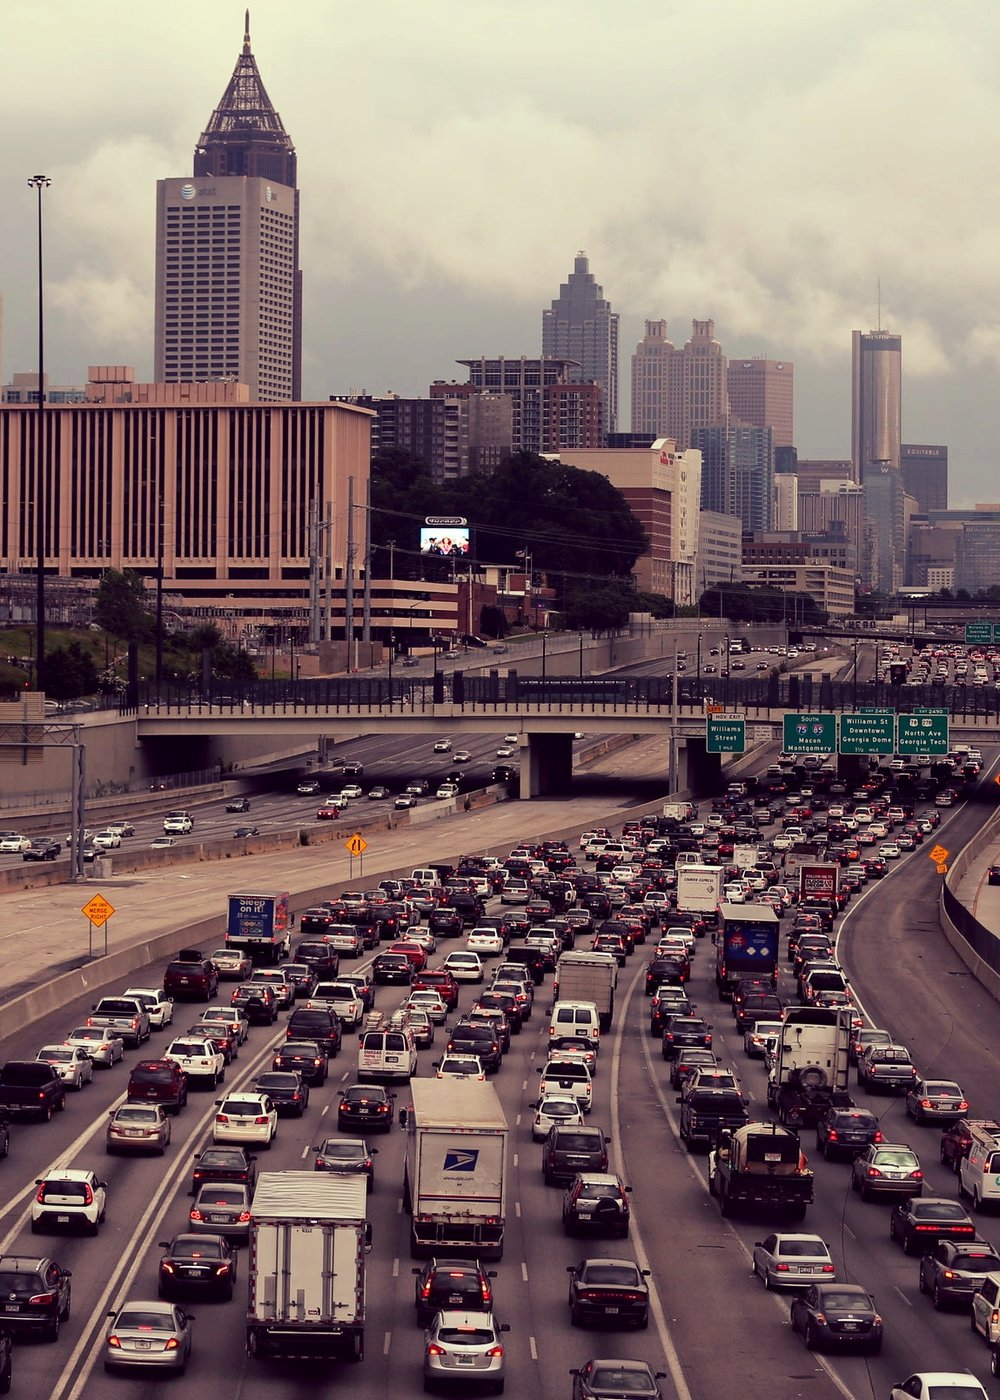 ATLANTA   With displaced populations from coastal cities streaming northward to here and other southern cities, social services are over-stretched. This summer's 130° heat wave is killing the homeless by the hordes.